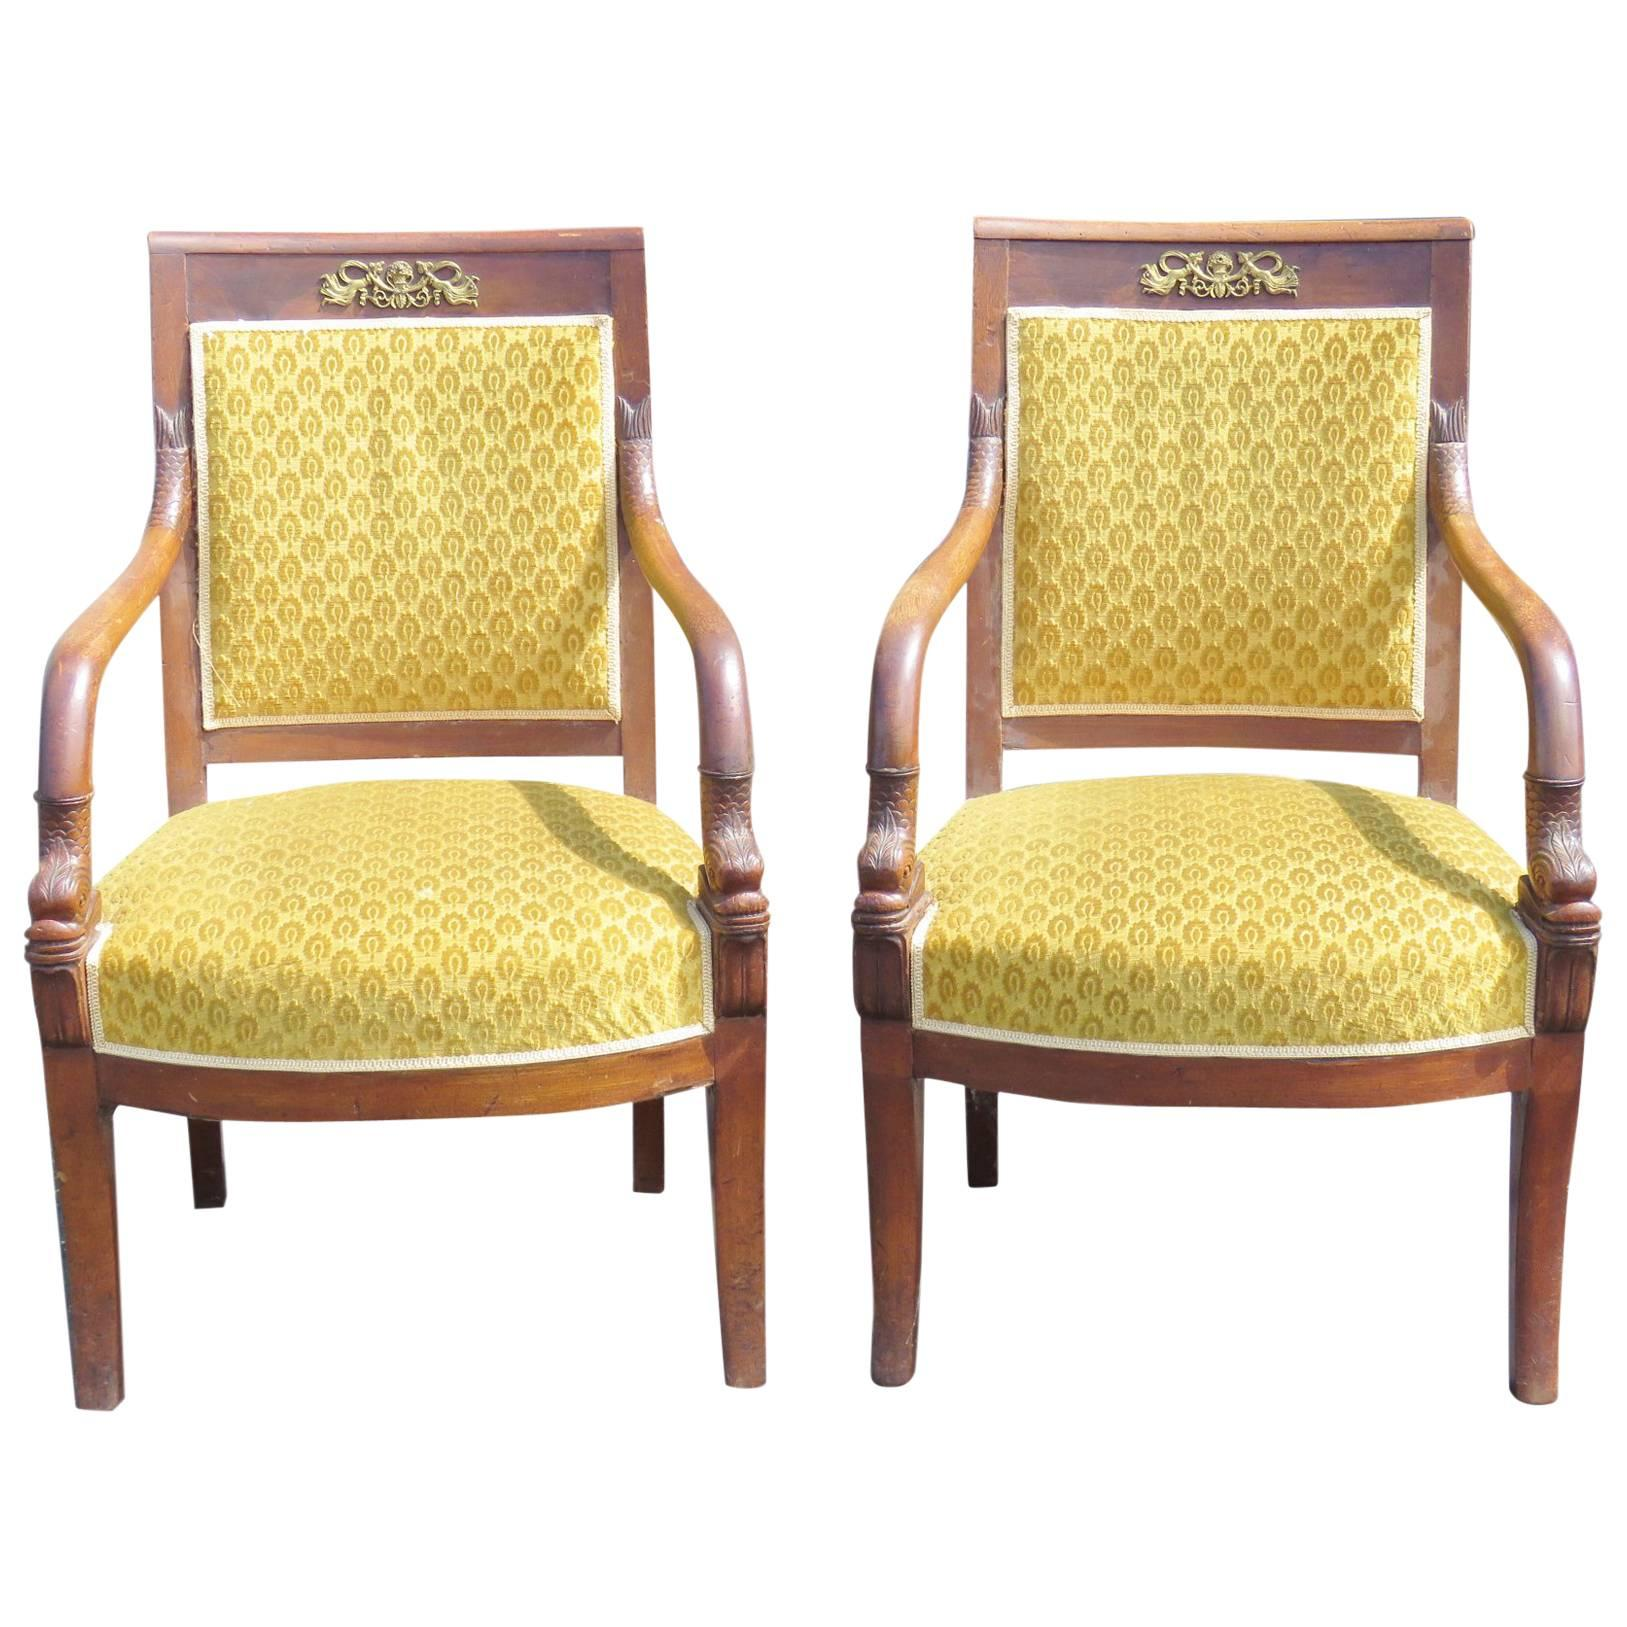 Pair of Antique French Empire Style Fauteuils wArm Chairs with Bronze Ormolu